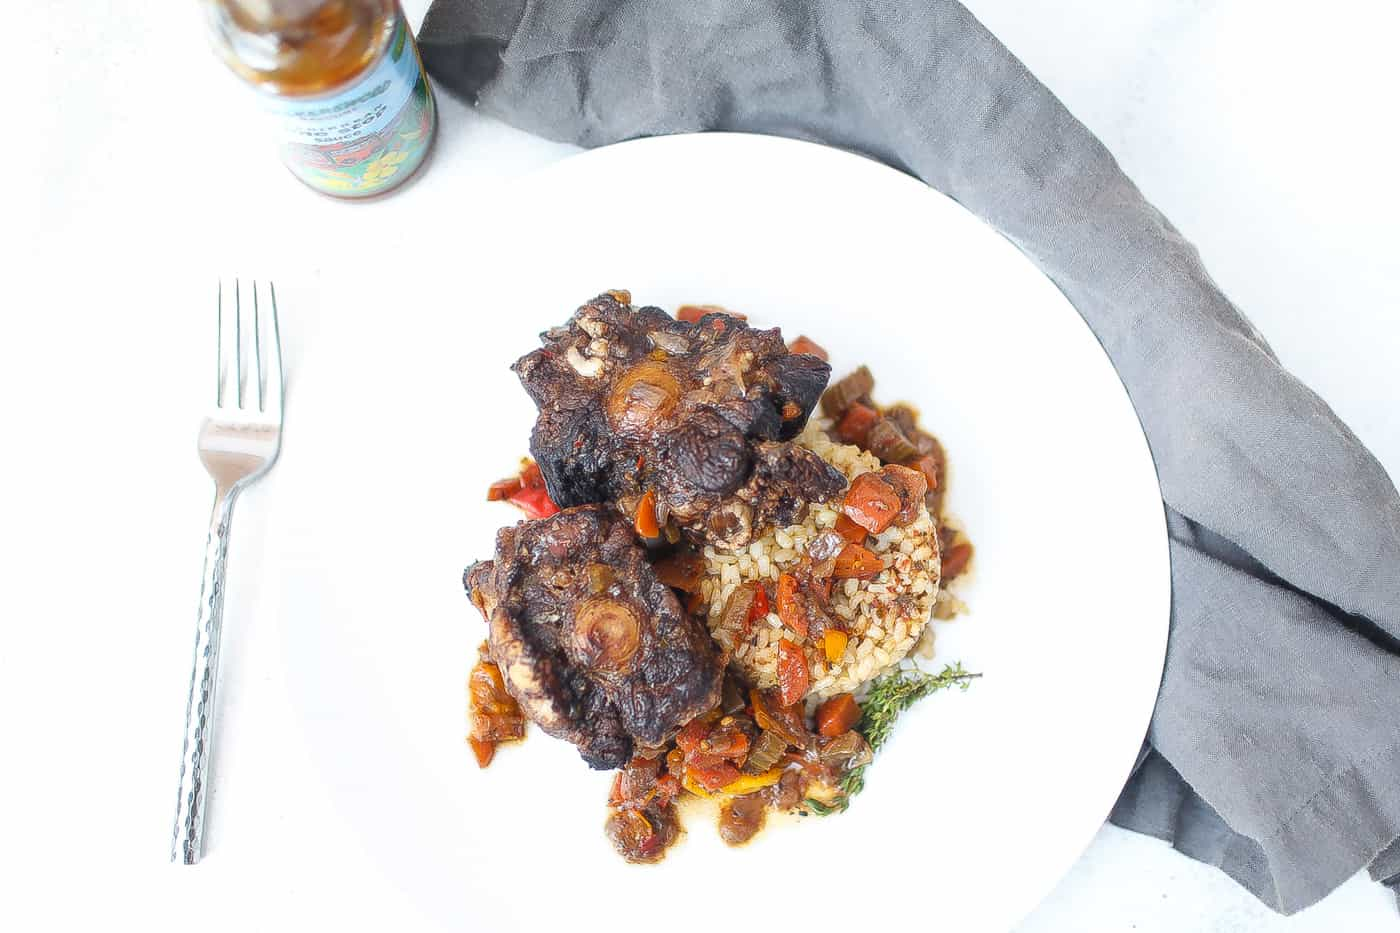 jamaica oxtail on white plate with brown rice